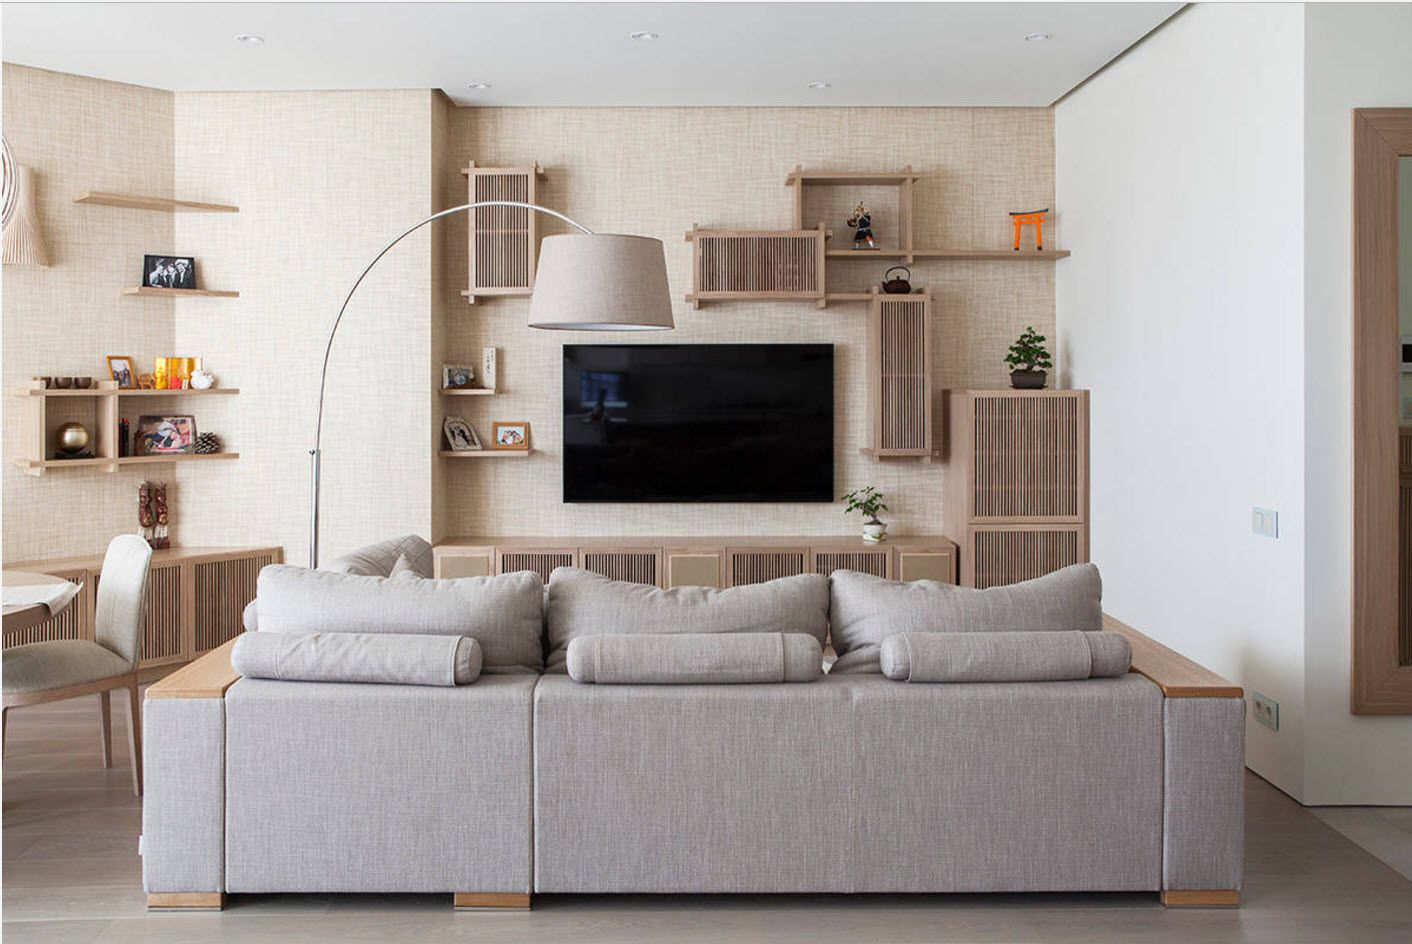 Gray steel sofa at the center of the zoned multifunctional living